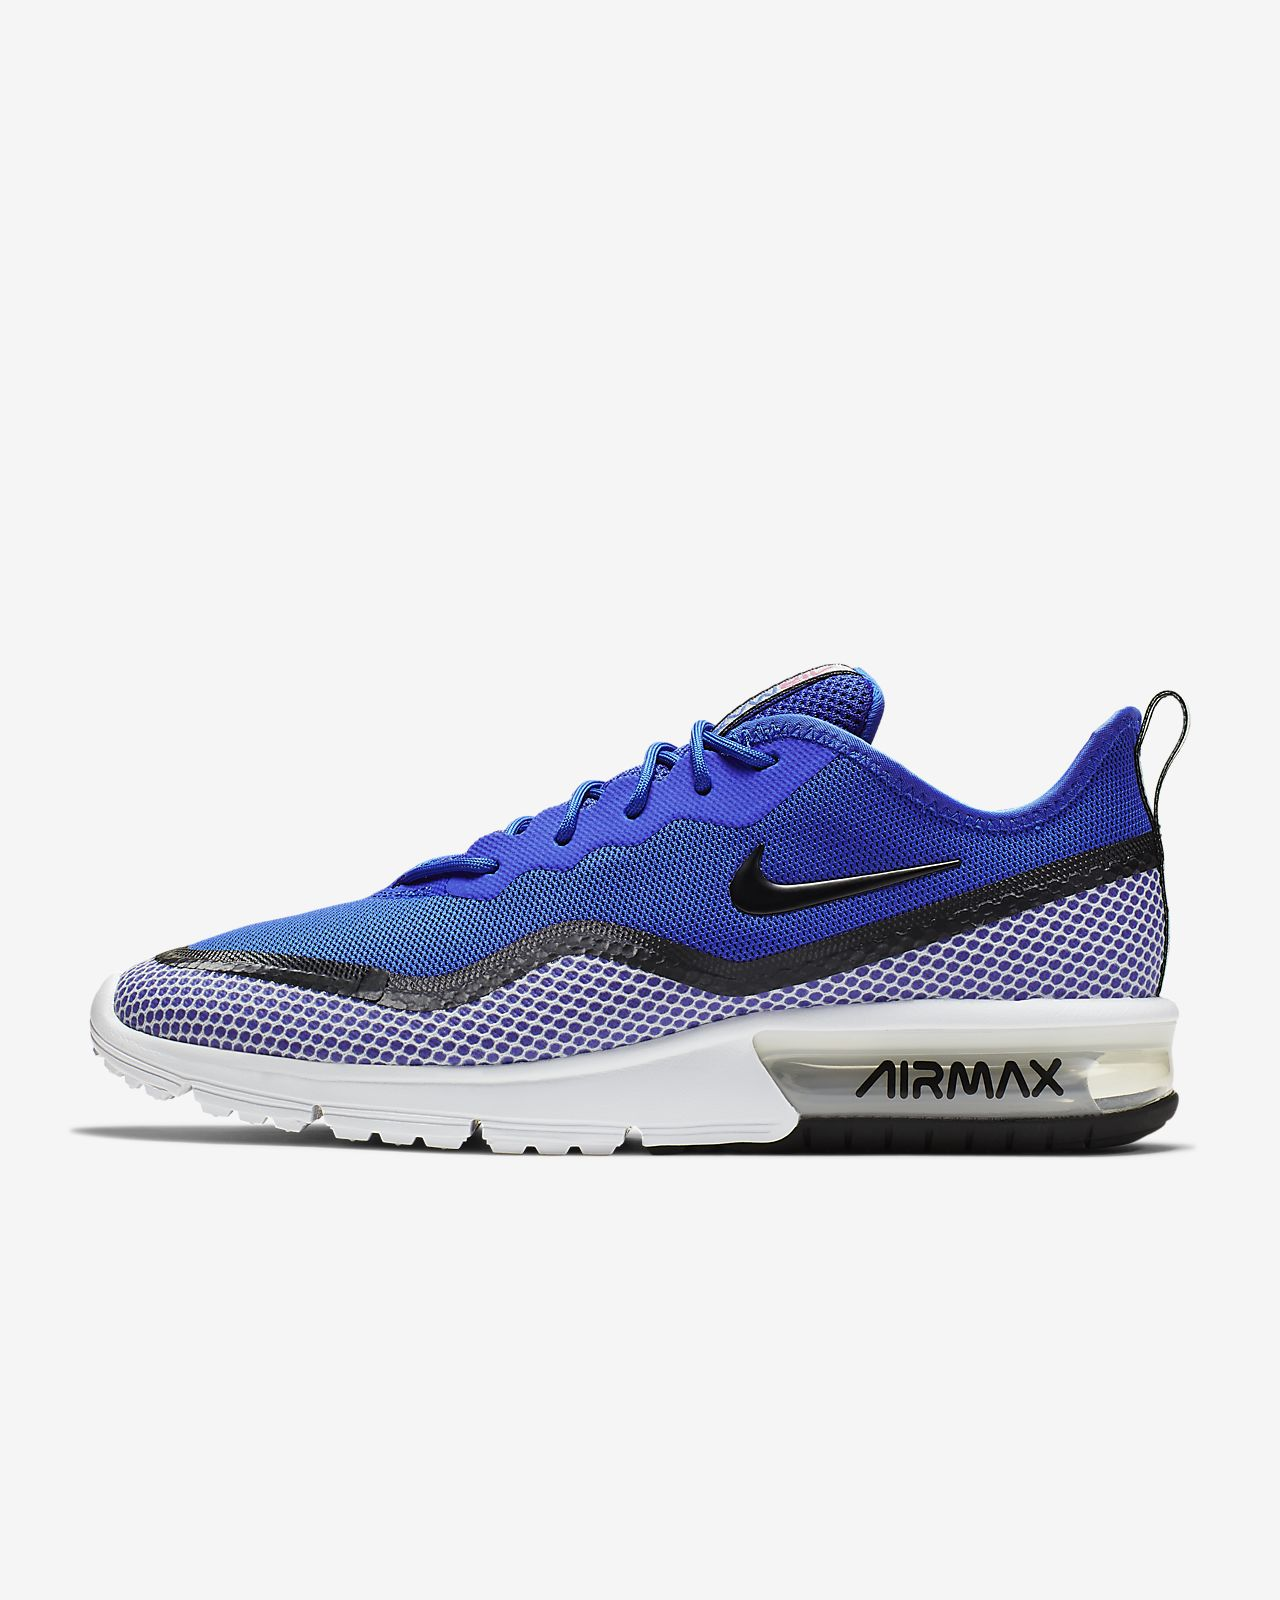 reputable site 92cec 45fd9 ... Chaussure Nike Air Max Sequent 4.5 SE pour Homme